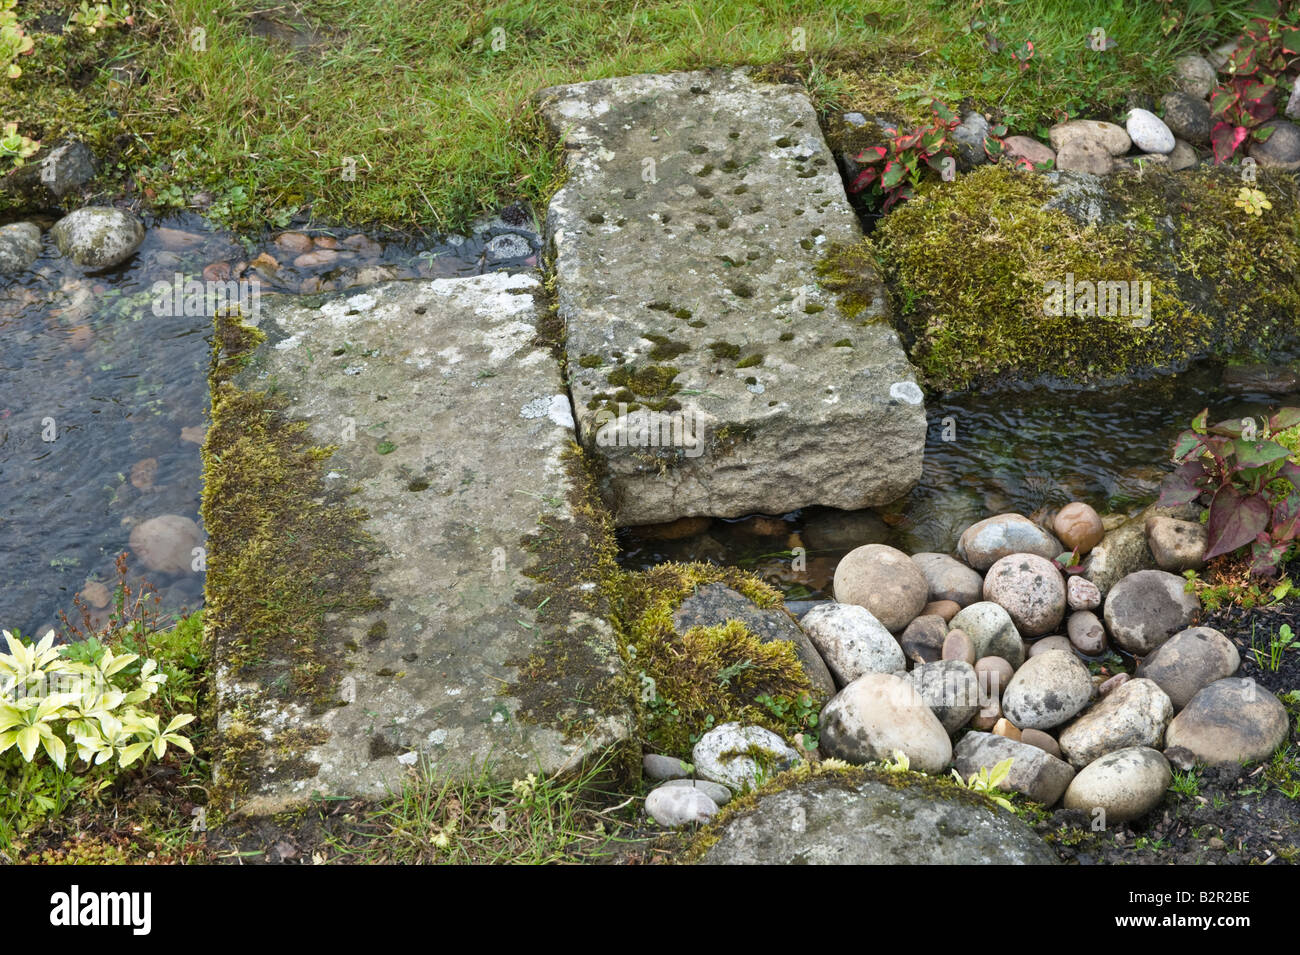 Gridstone stepping stones over stream in garden design by bahaa stock photo royalty free image for Garden design yorkshire